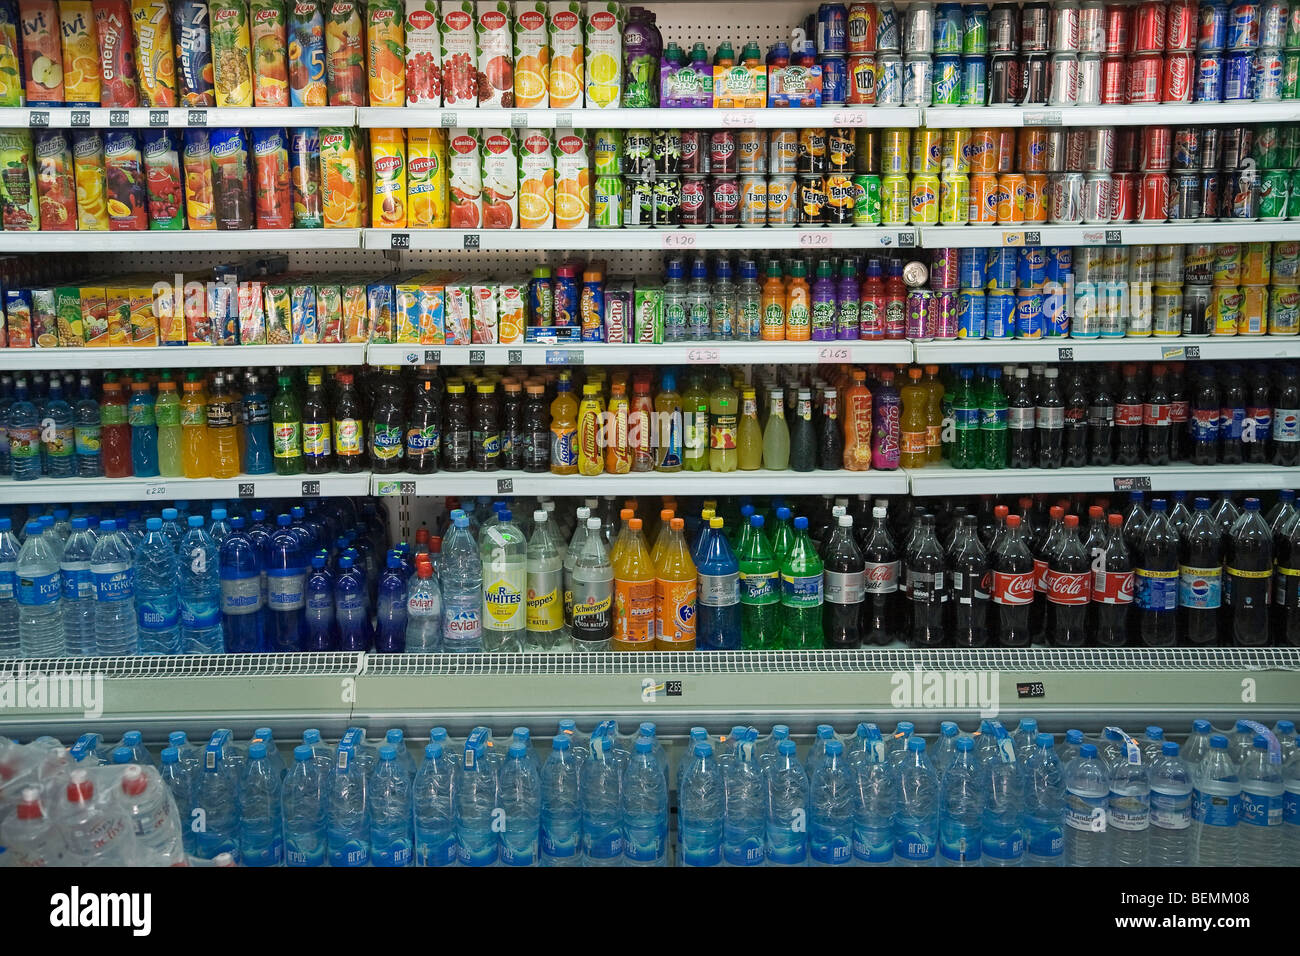 Shelves with lots of different soft drinks, like colas, fruit sodas, juices and water in a Supermarket in Cyprus - Stock Image